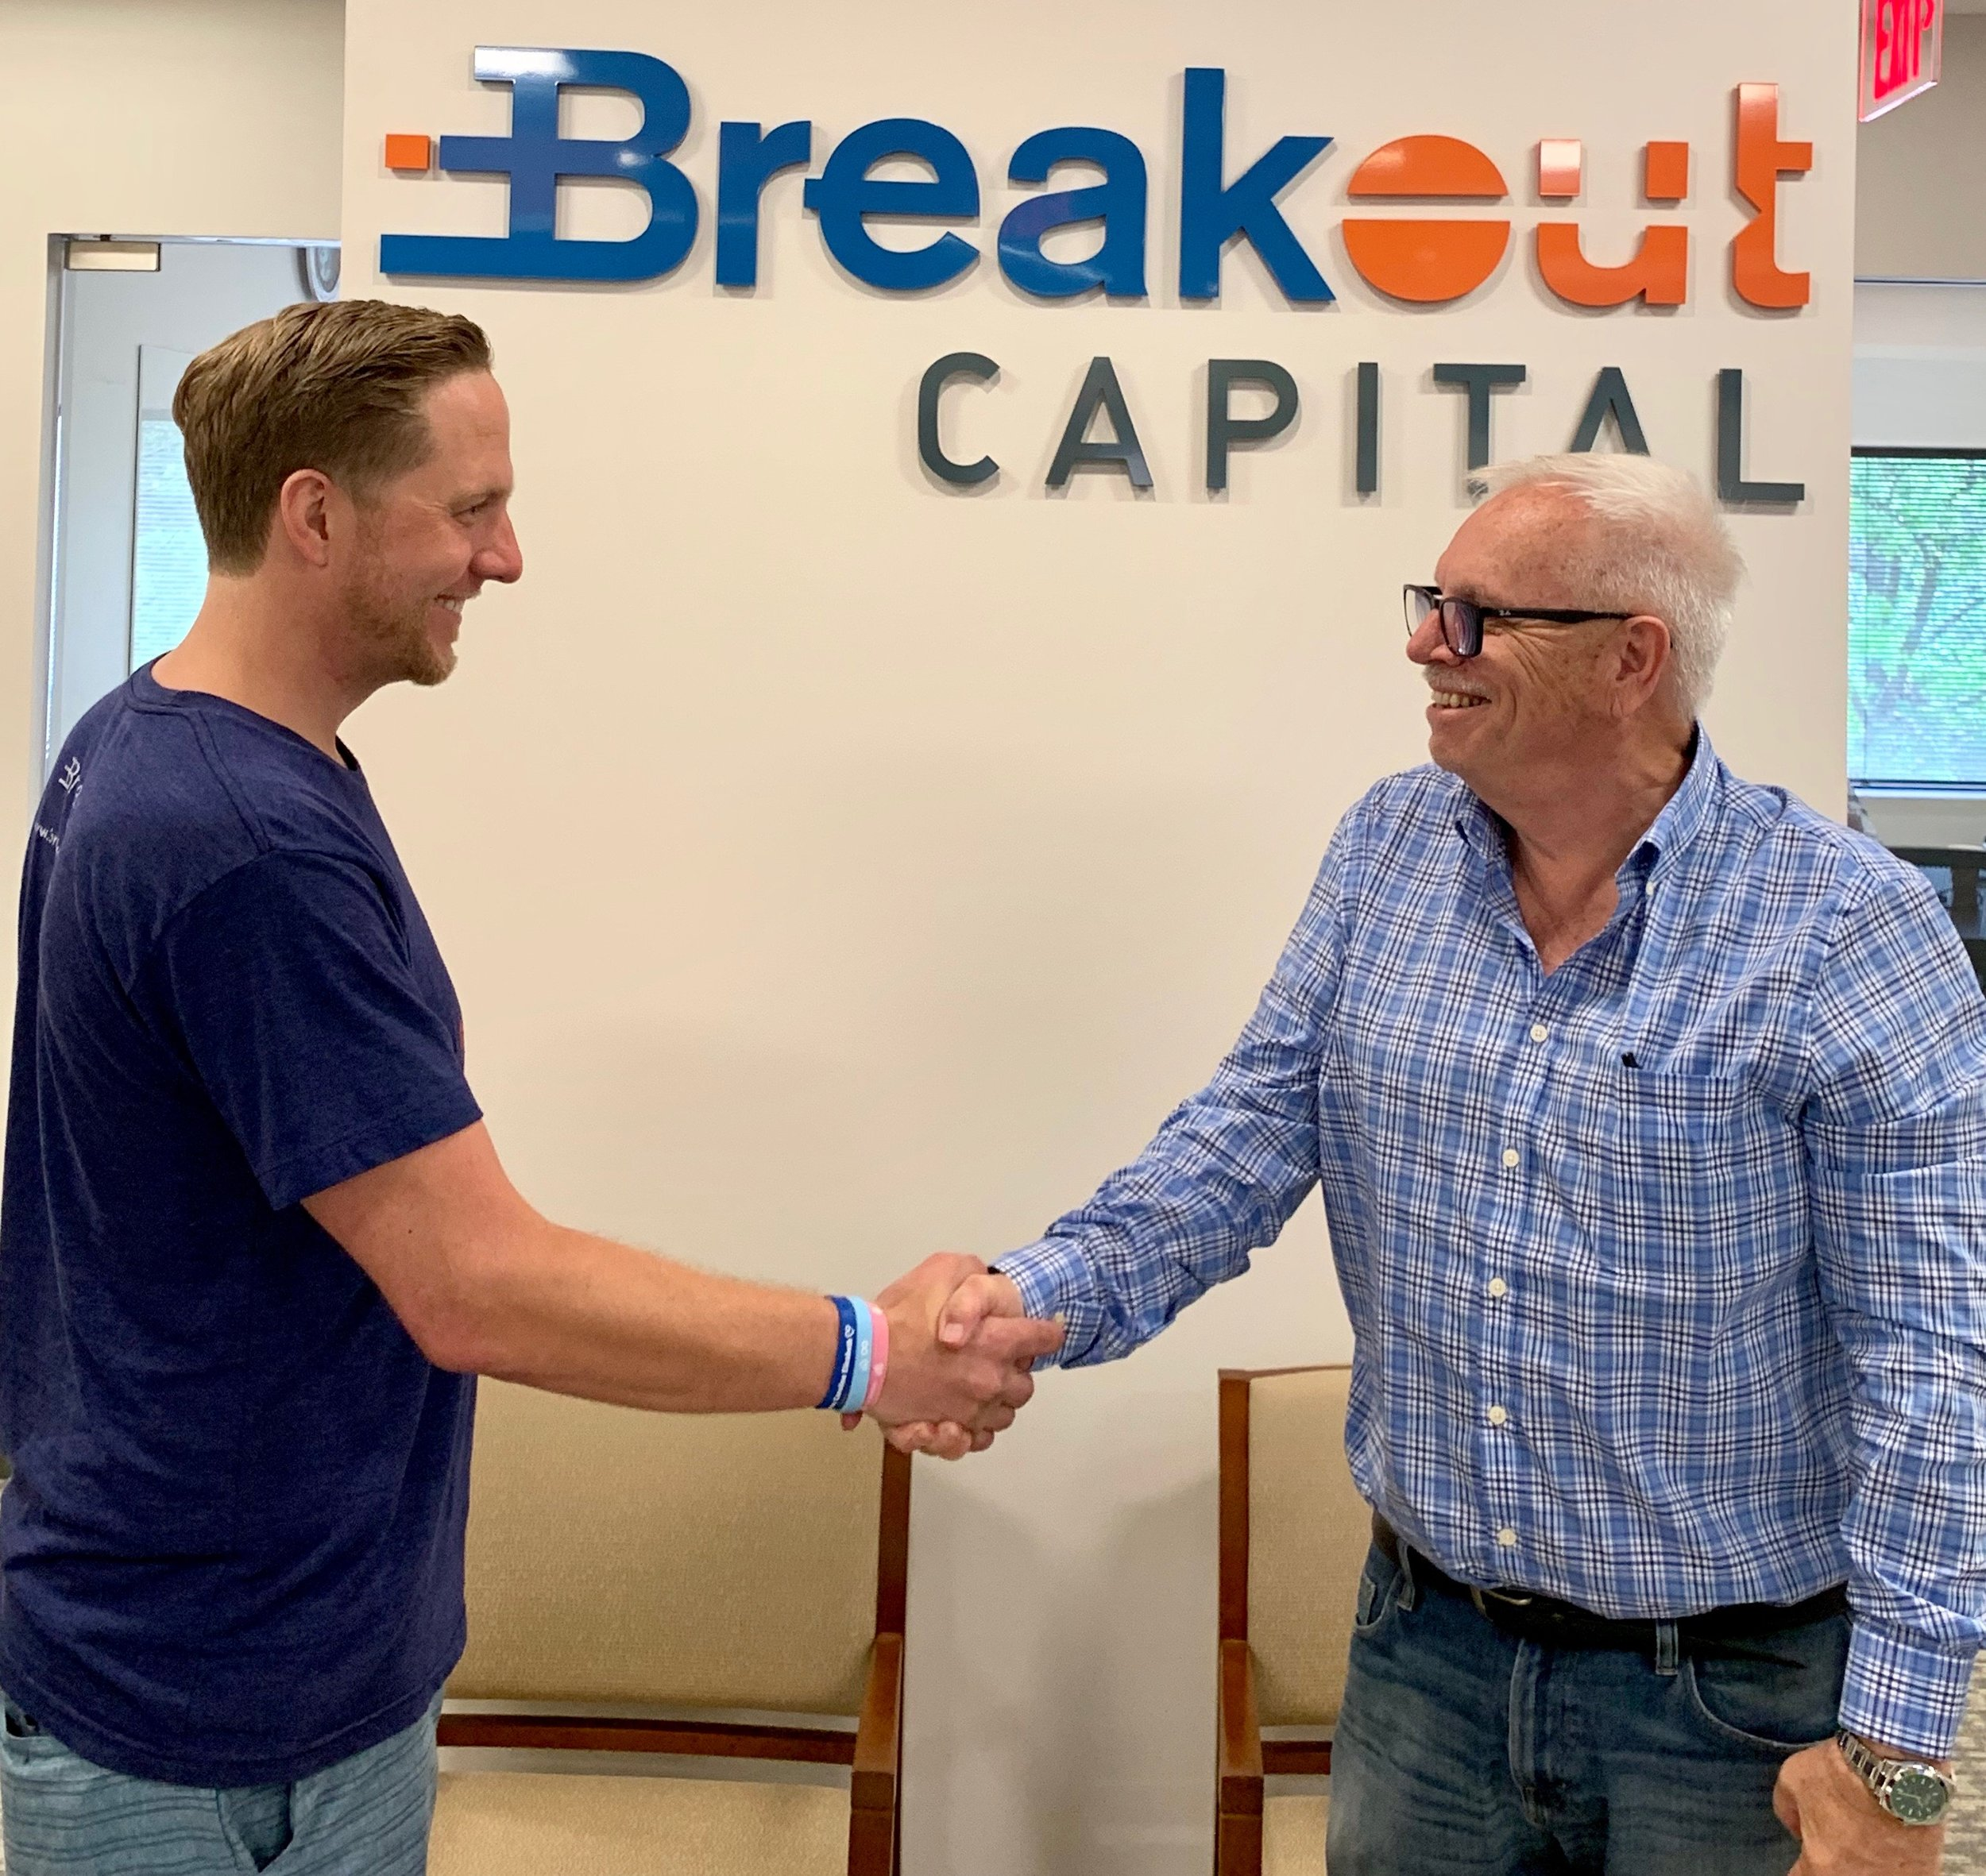 SecurCapital Acquires Breakout Capital - SecurCapital acquires the lending business of leading fintech small business lender, Breakout Capital Finance and injects new equity capital.MCLEAN, VA / PR NEWSWIRE / IMMEDIATE RELEASE